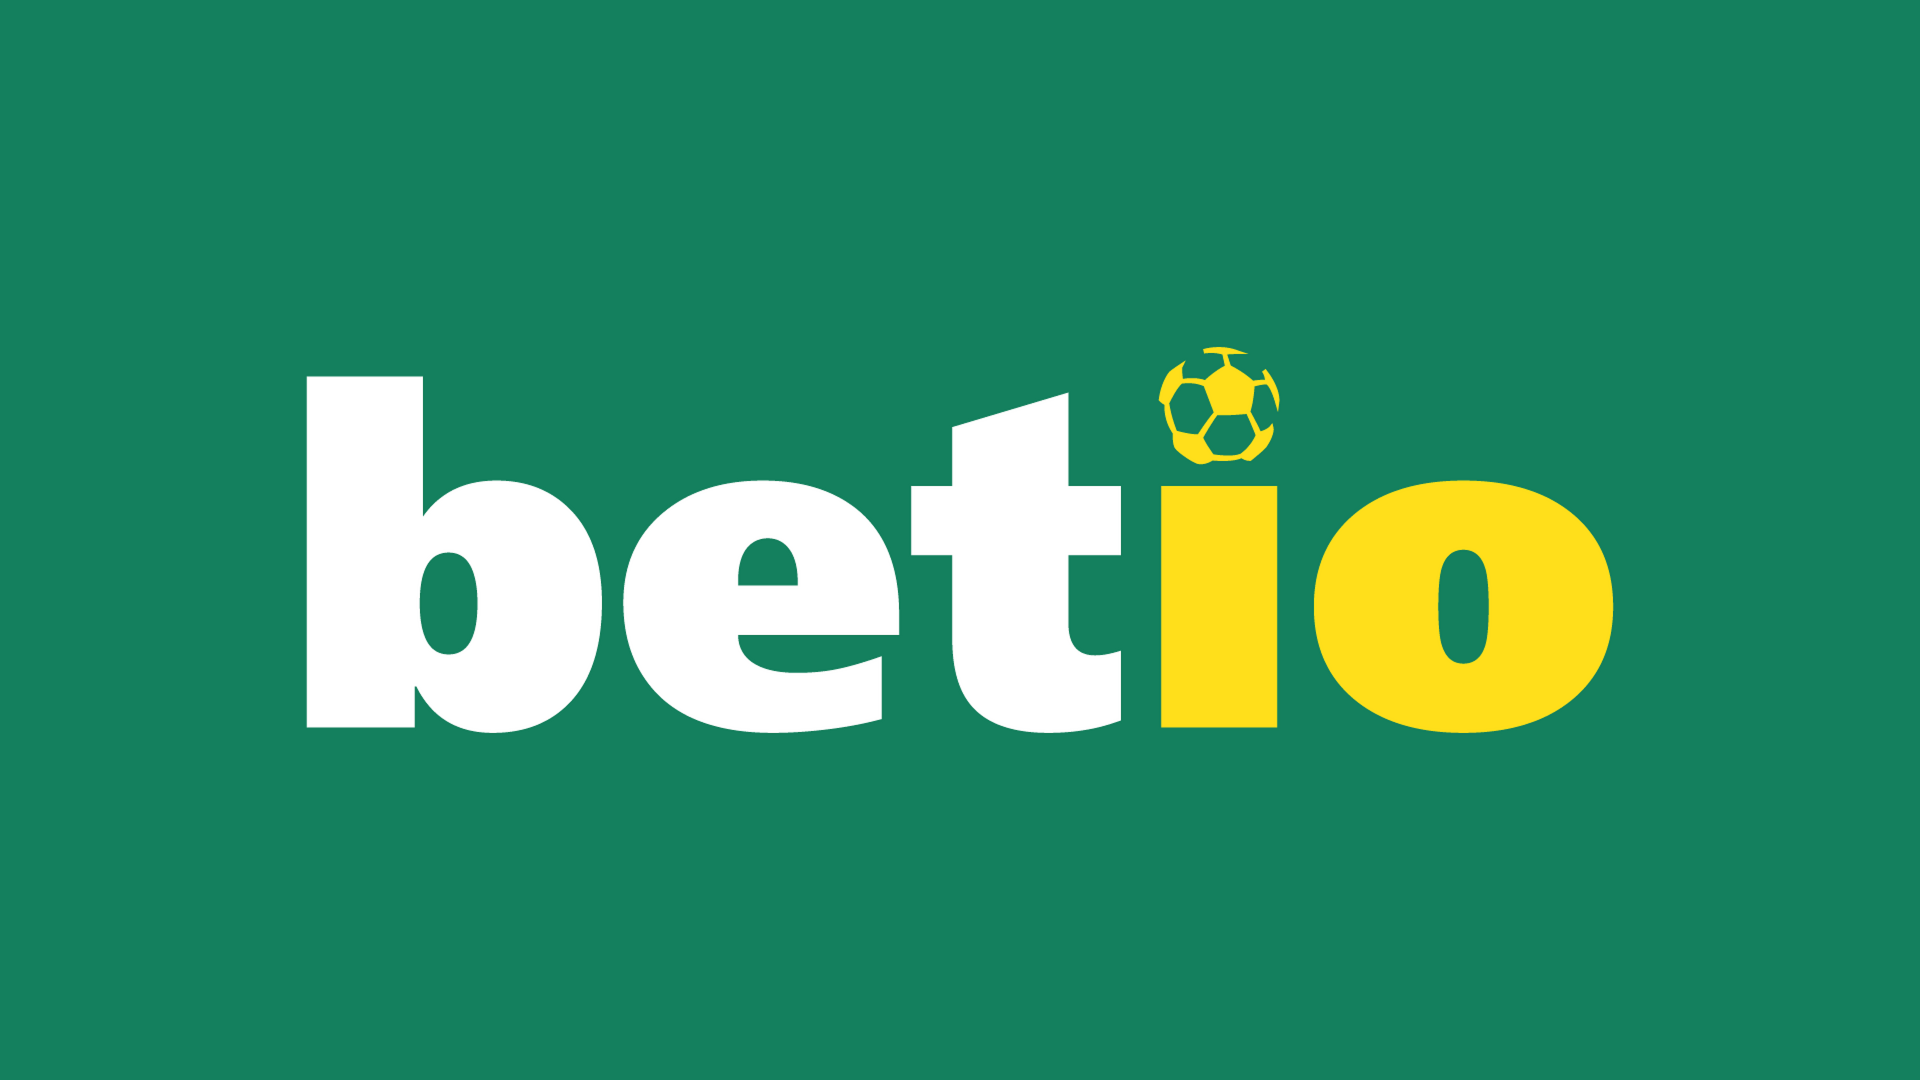 Bet365 Sues Bularia's Betio for Intellectual Property Theft.